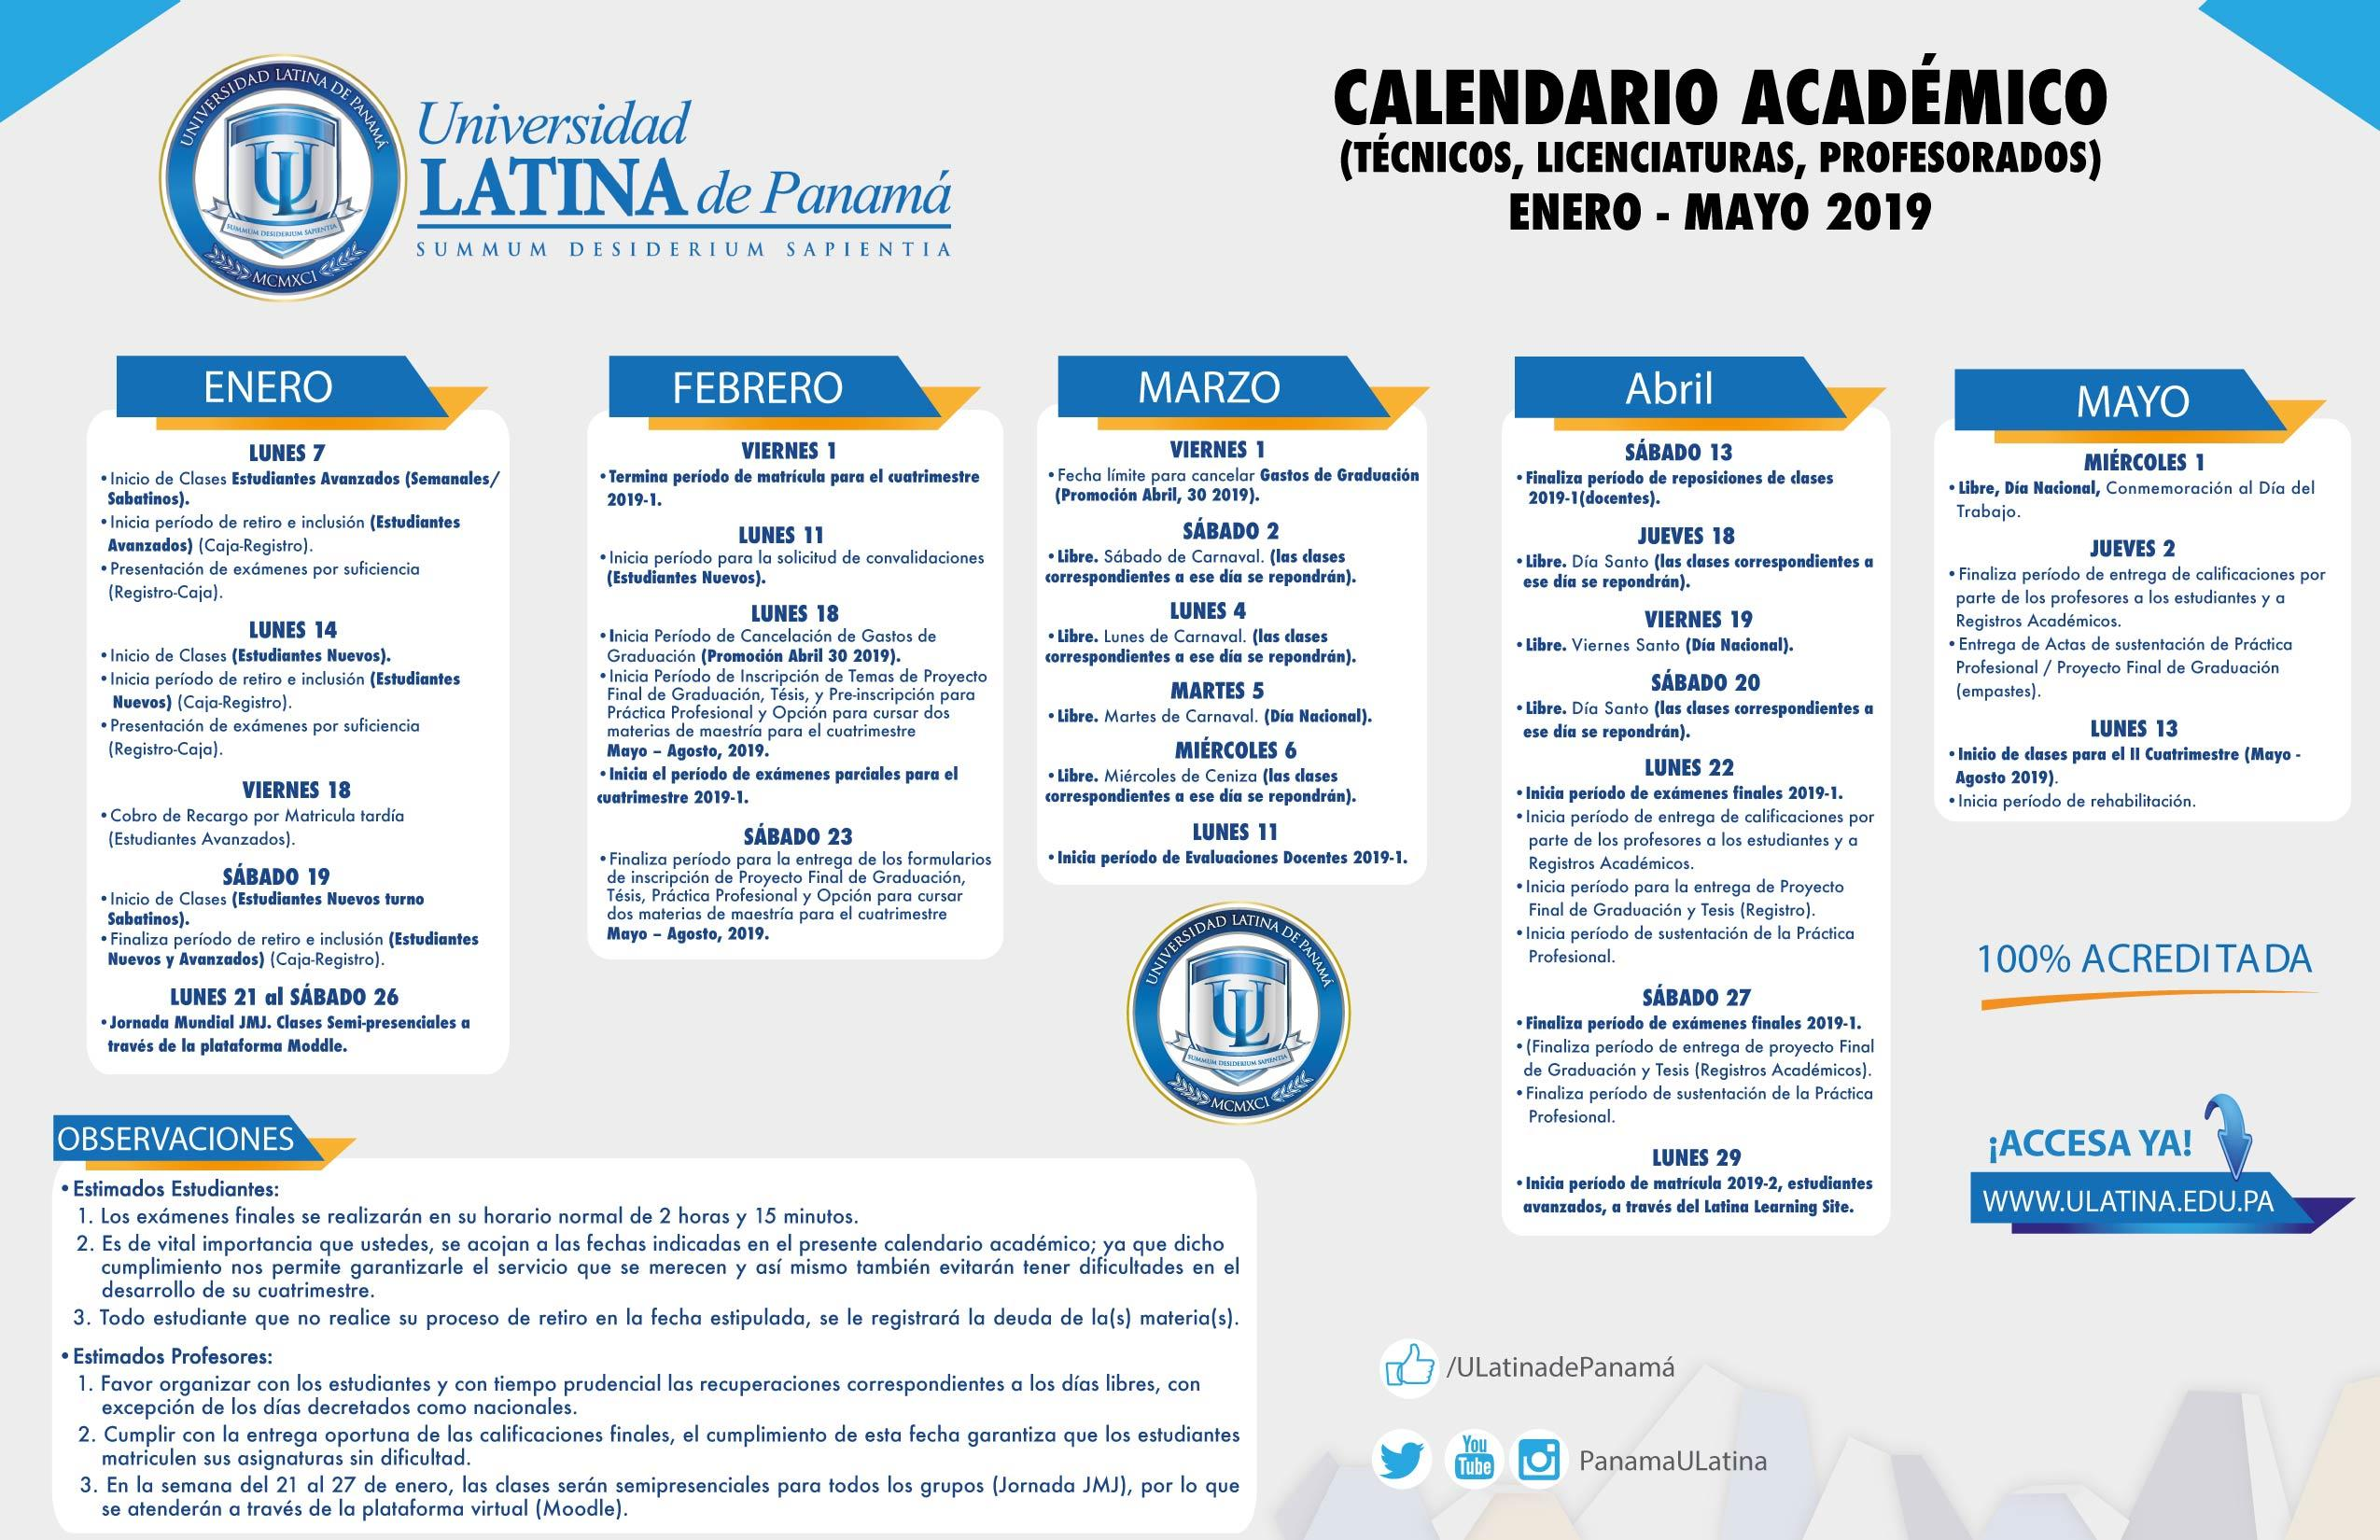 Calendario Universidad De Panama 2018.Calendarios Academicos Vida De Campus Universidad Latina